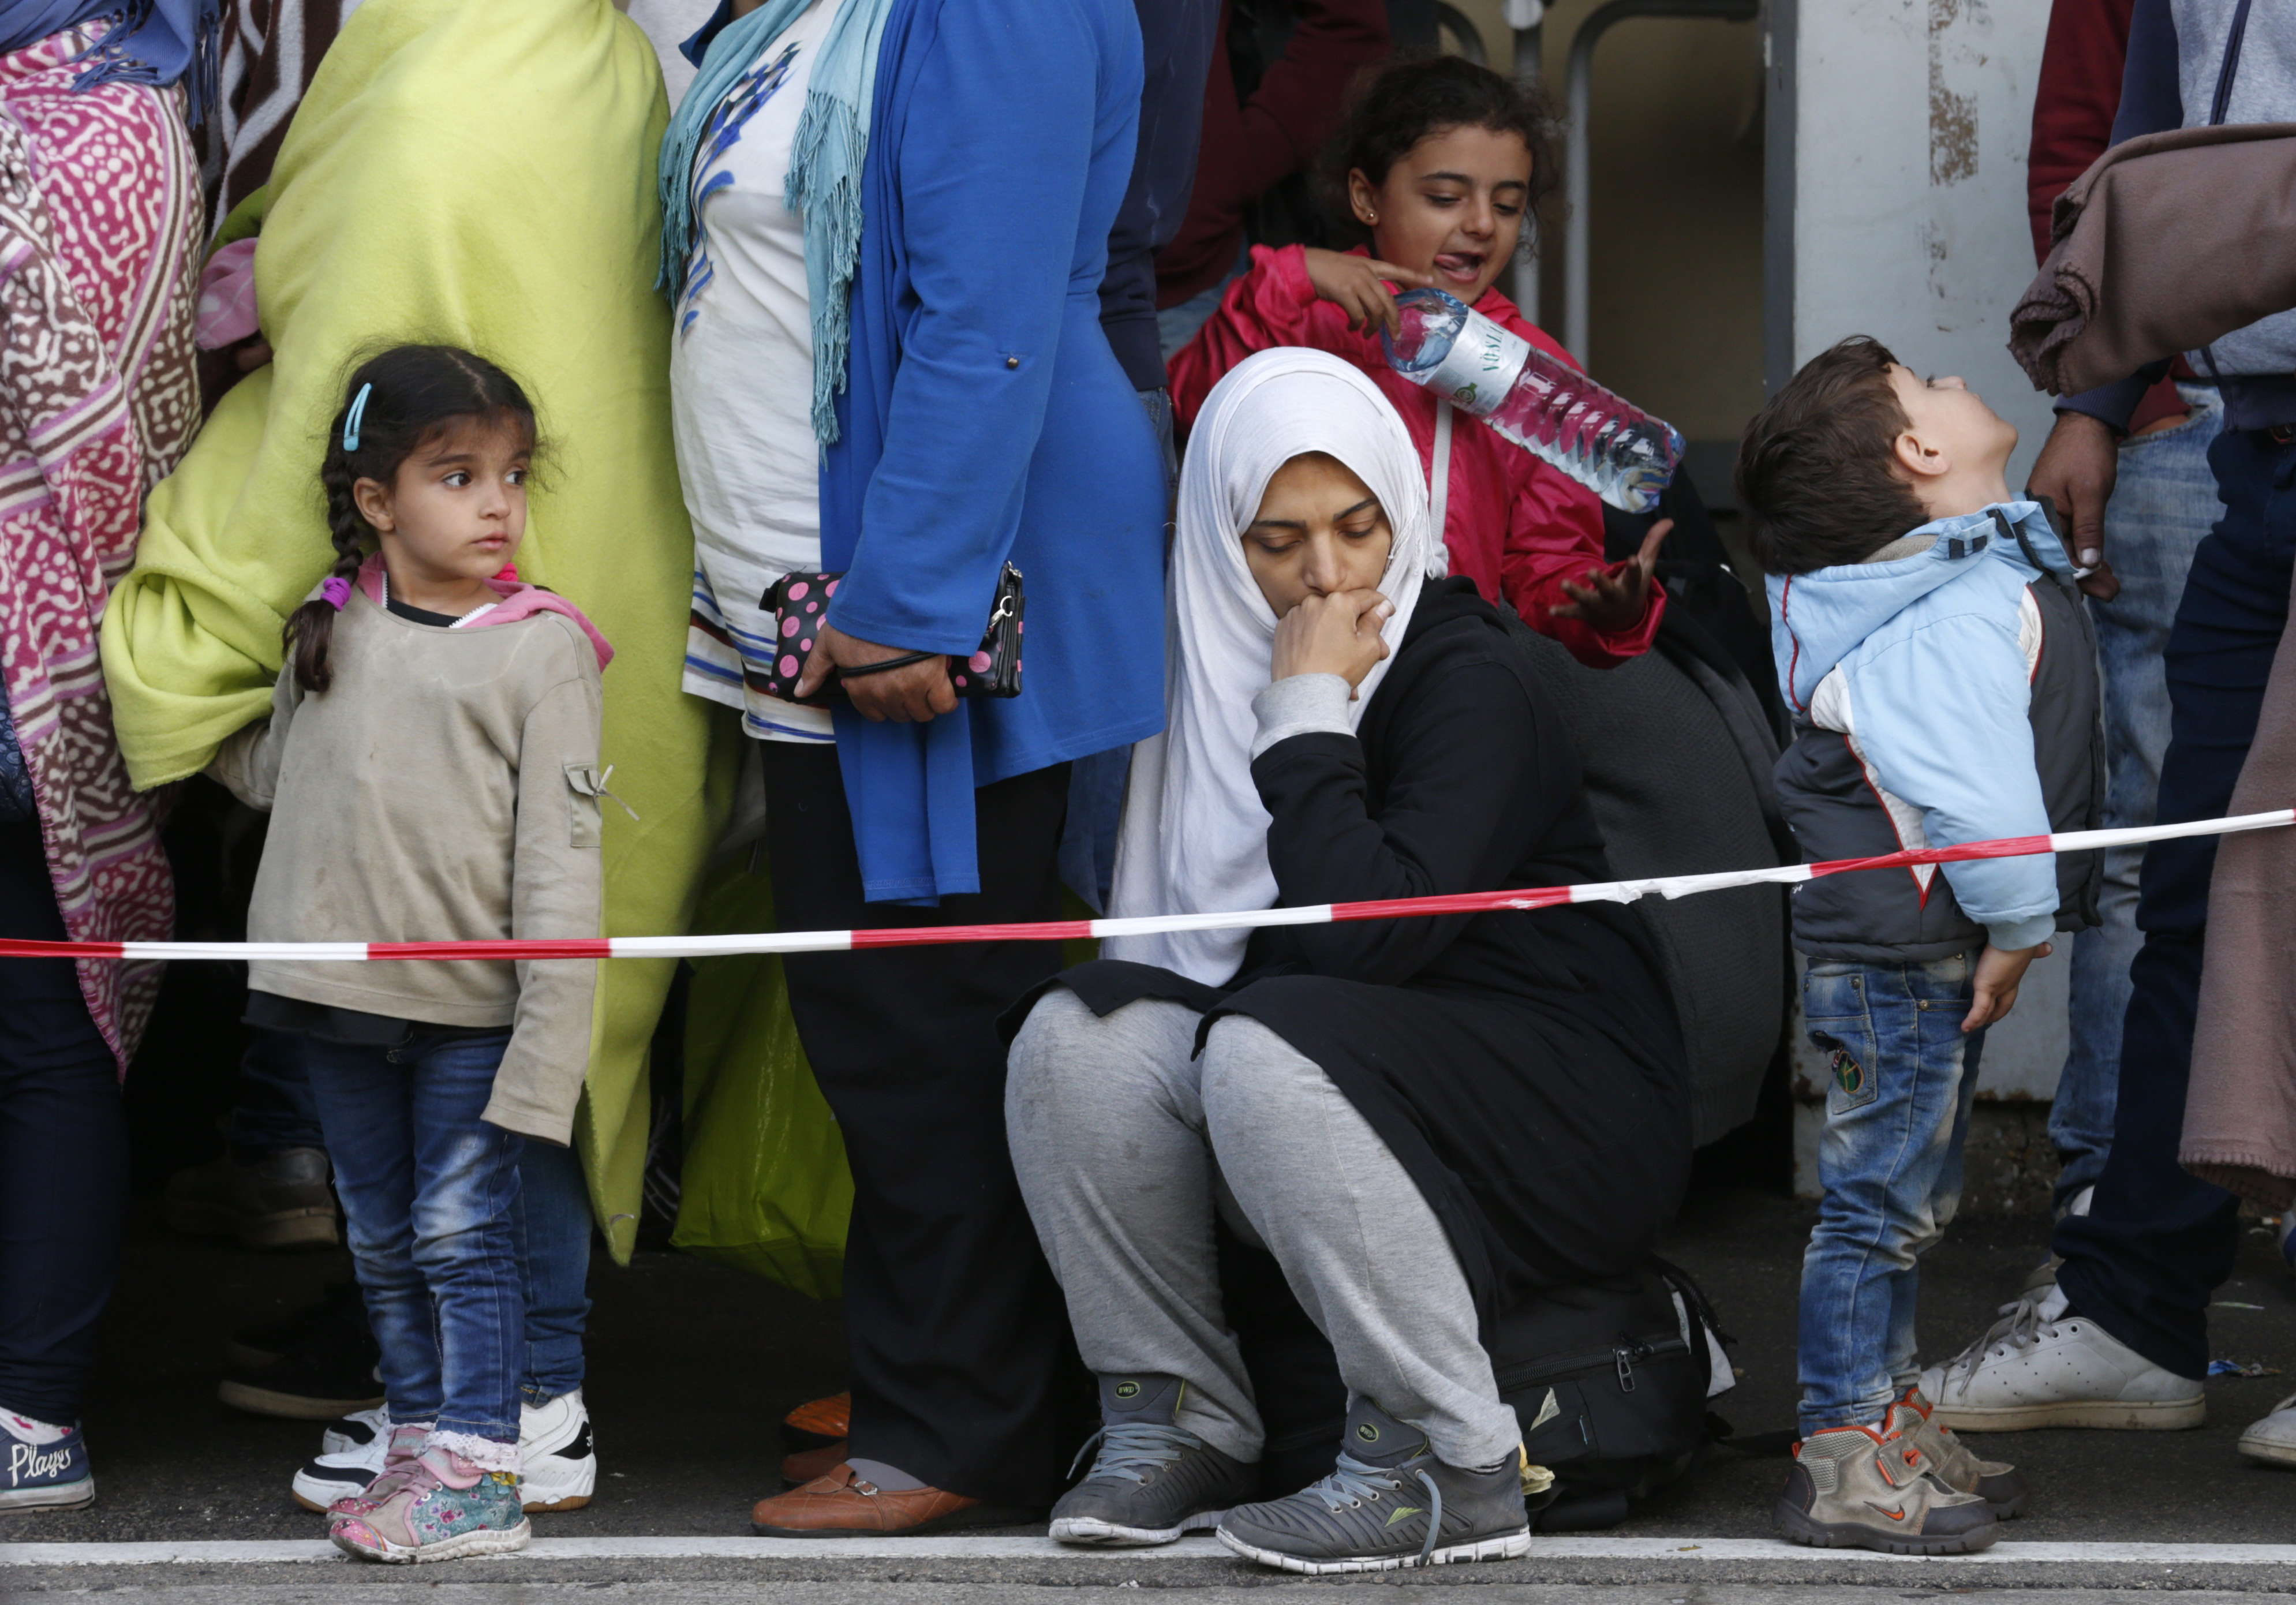 Migrants wait for trains at the Wien Westbahnhof in Vienna, Austria, on Sept. 10, 2015. Photo by Heinz-Peter Bader/Reuters